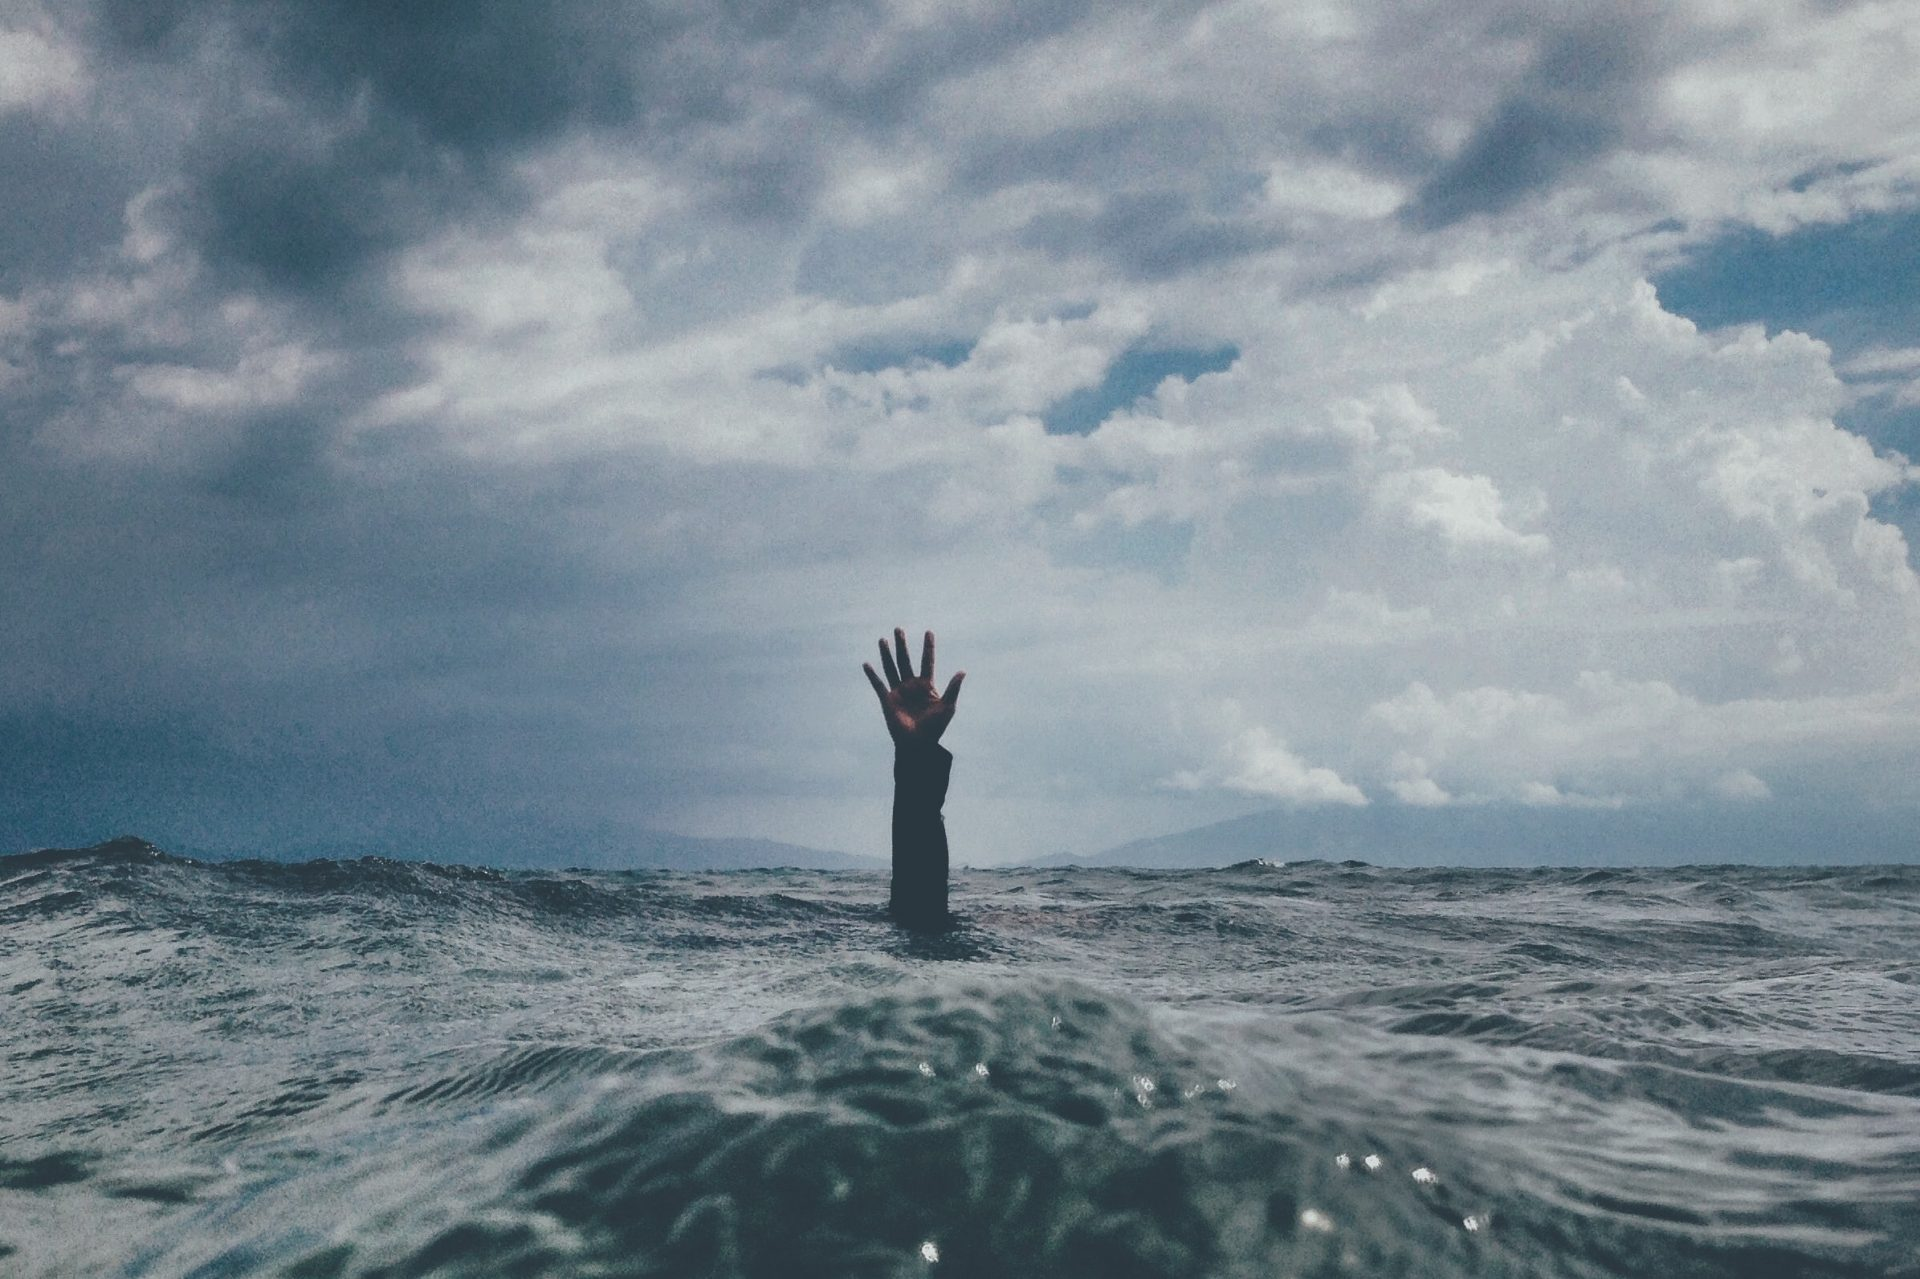 Tackling Mental Health in the Climate Crisis: Why Has Progress Been Lacking?